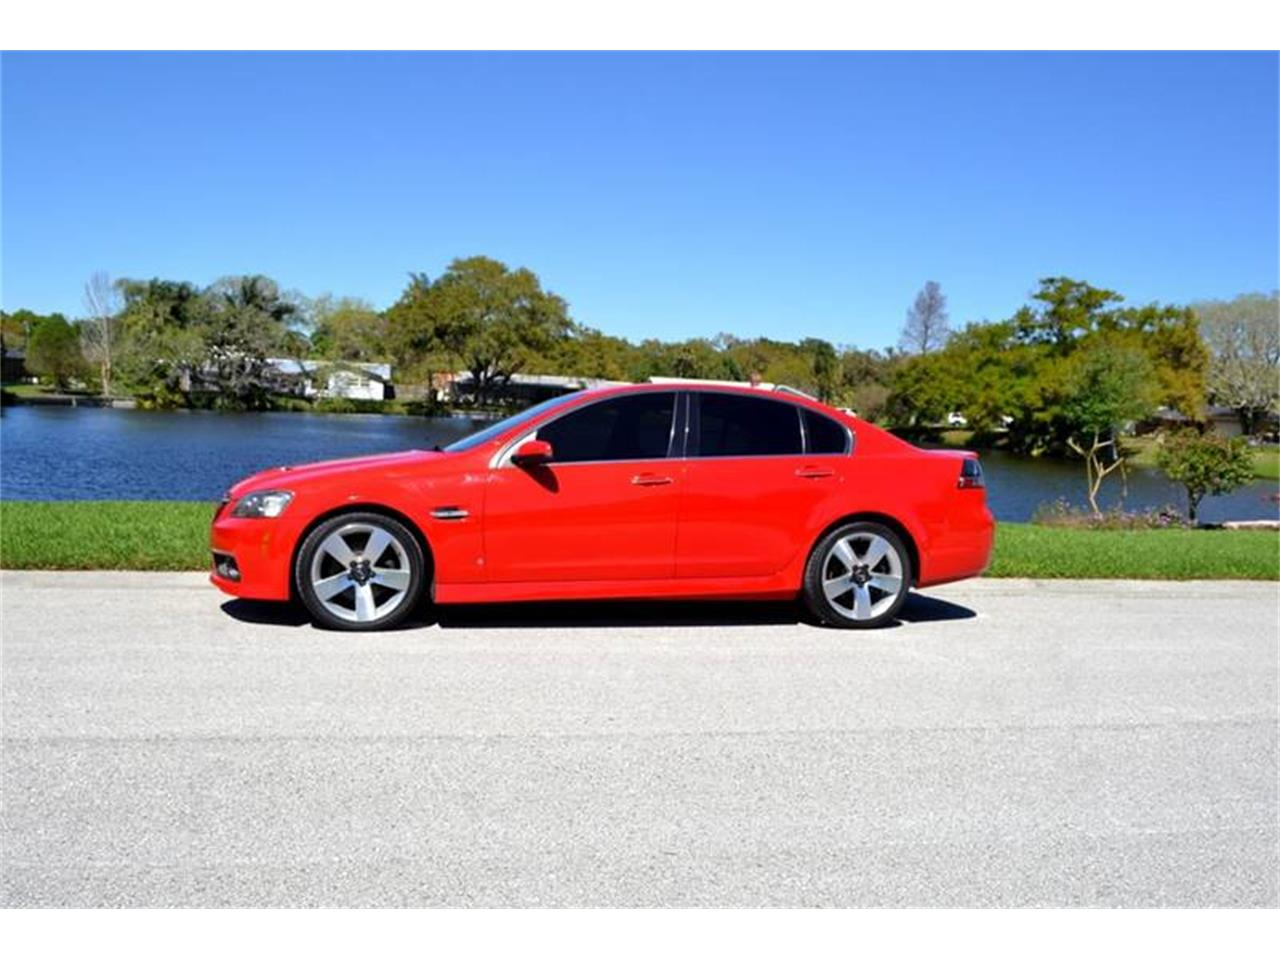 2009 Pontiac G8 for sale in Clearwater, FL – photo 2